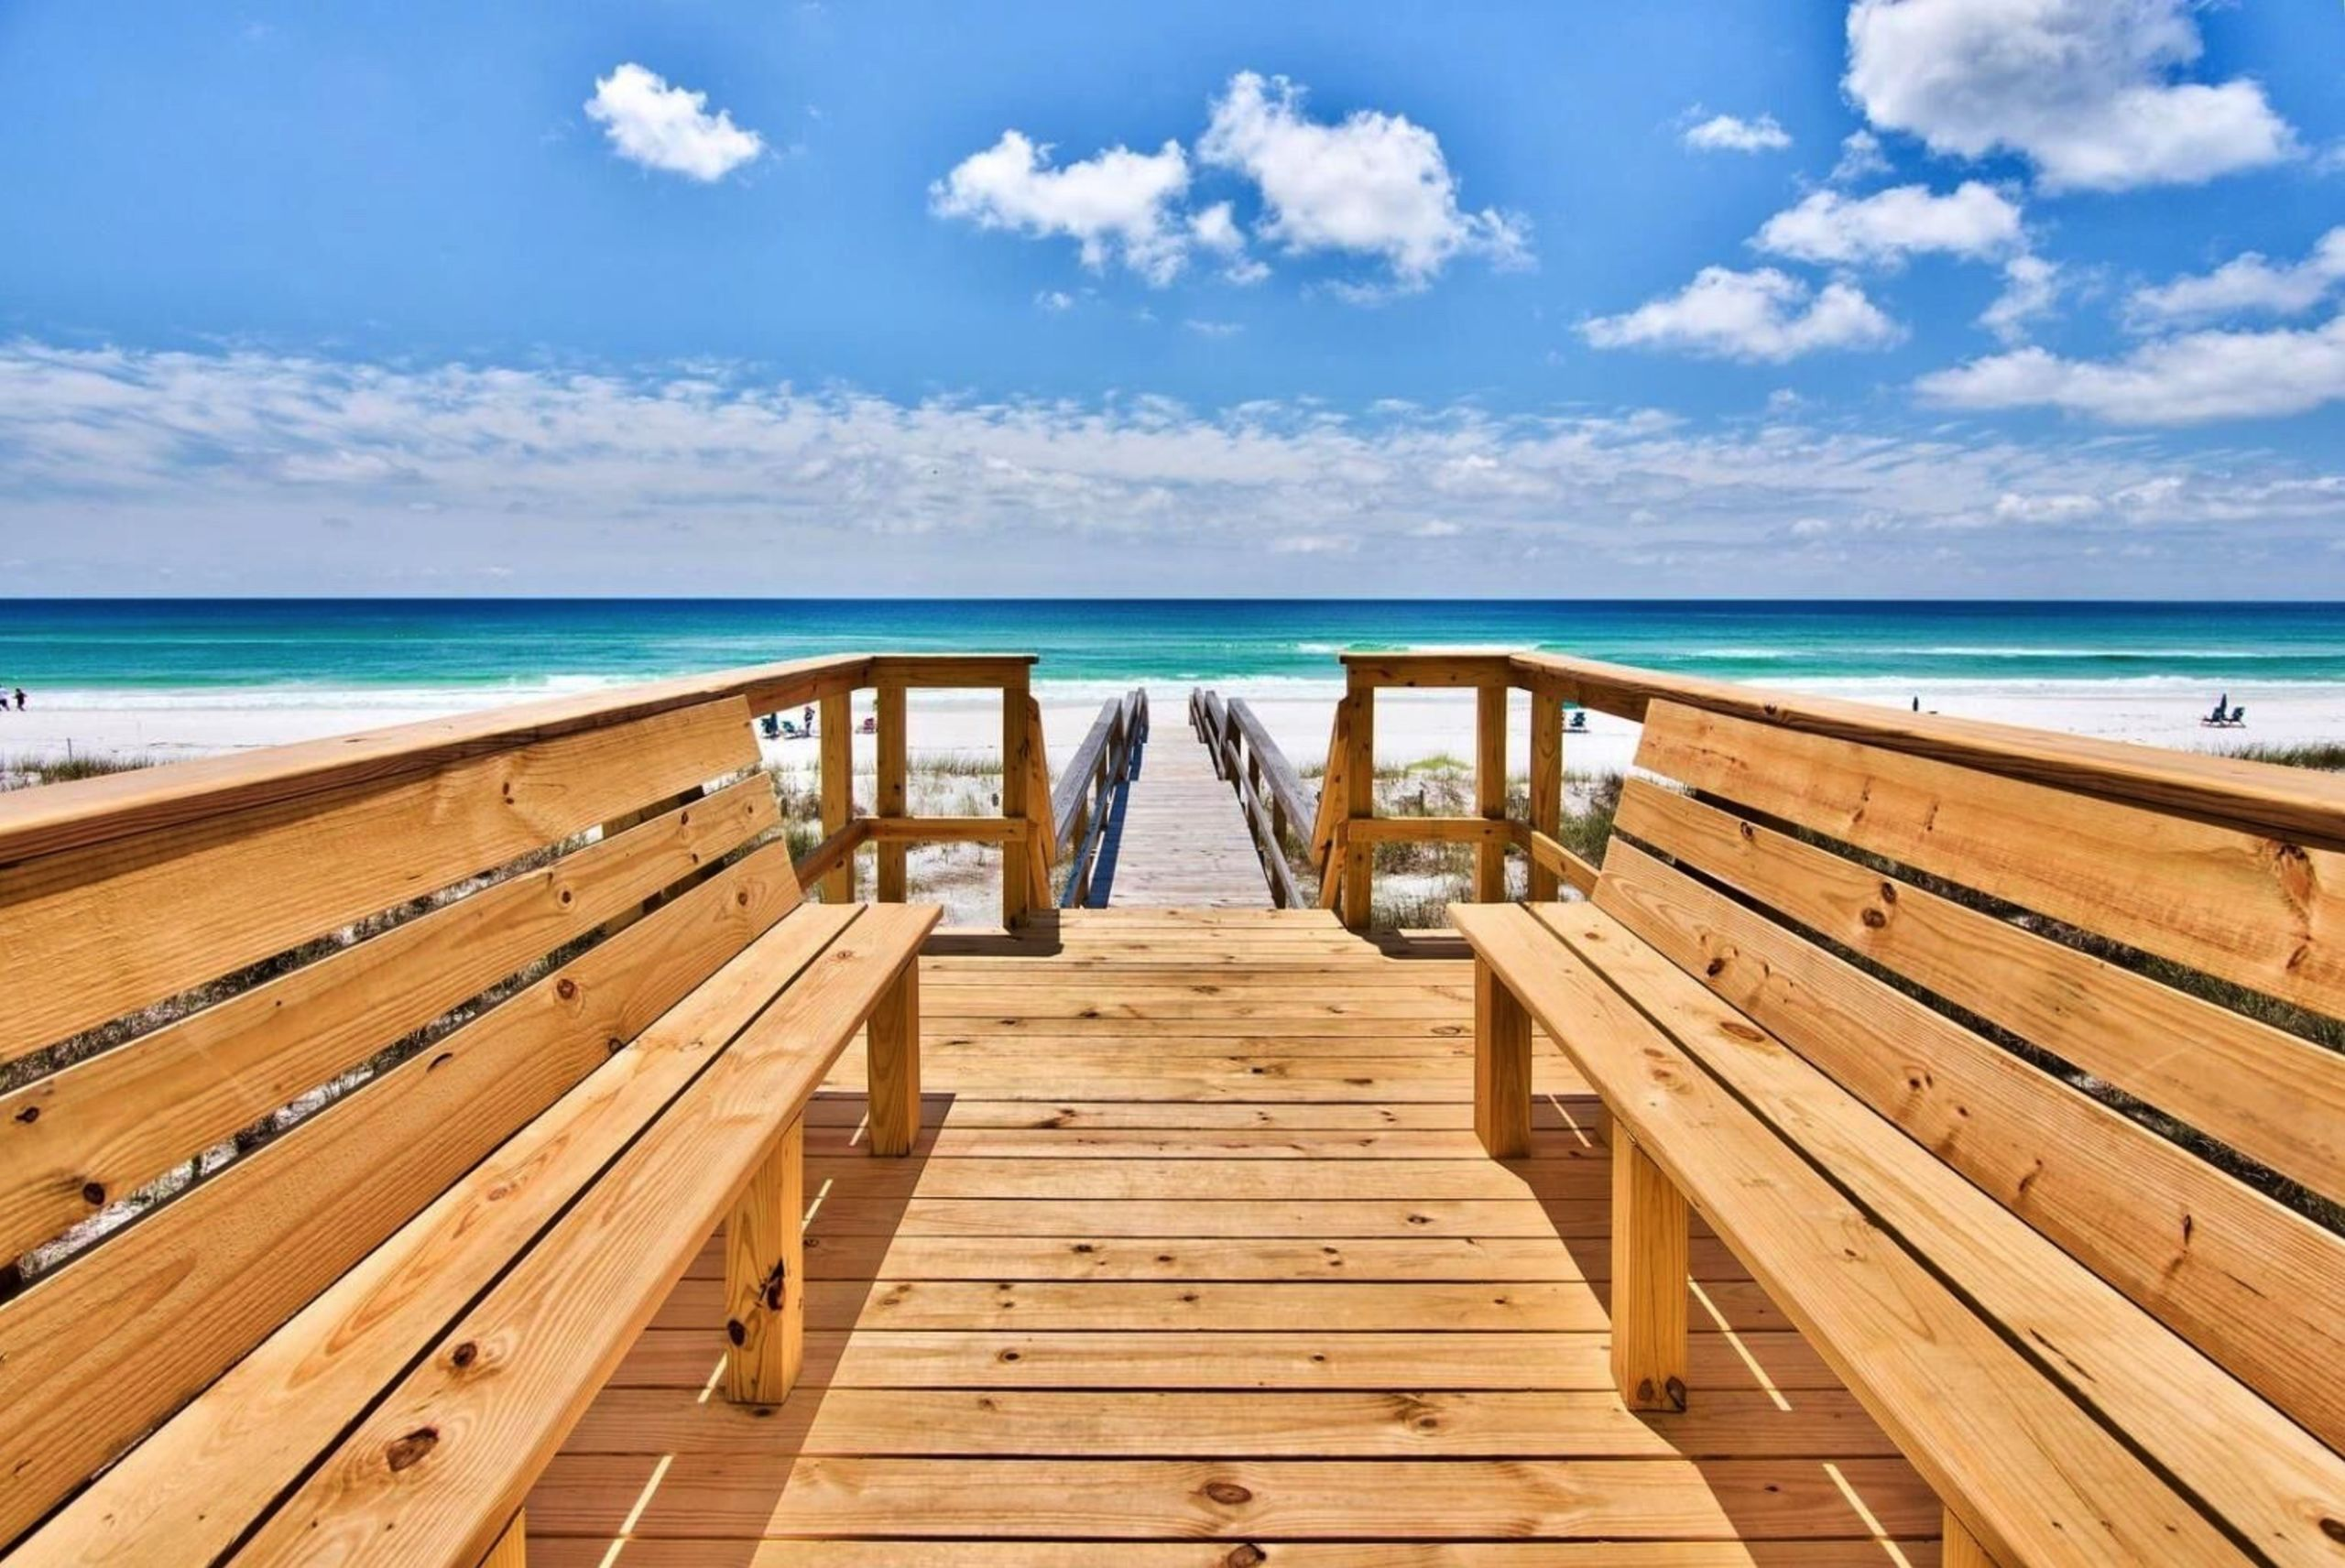 Destin is famous for its sugar white sand + emerald green water.